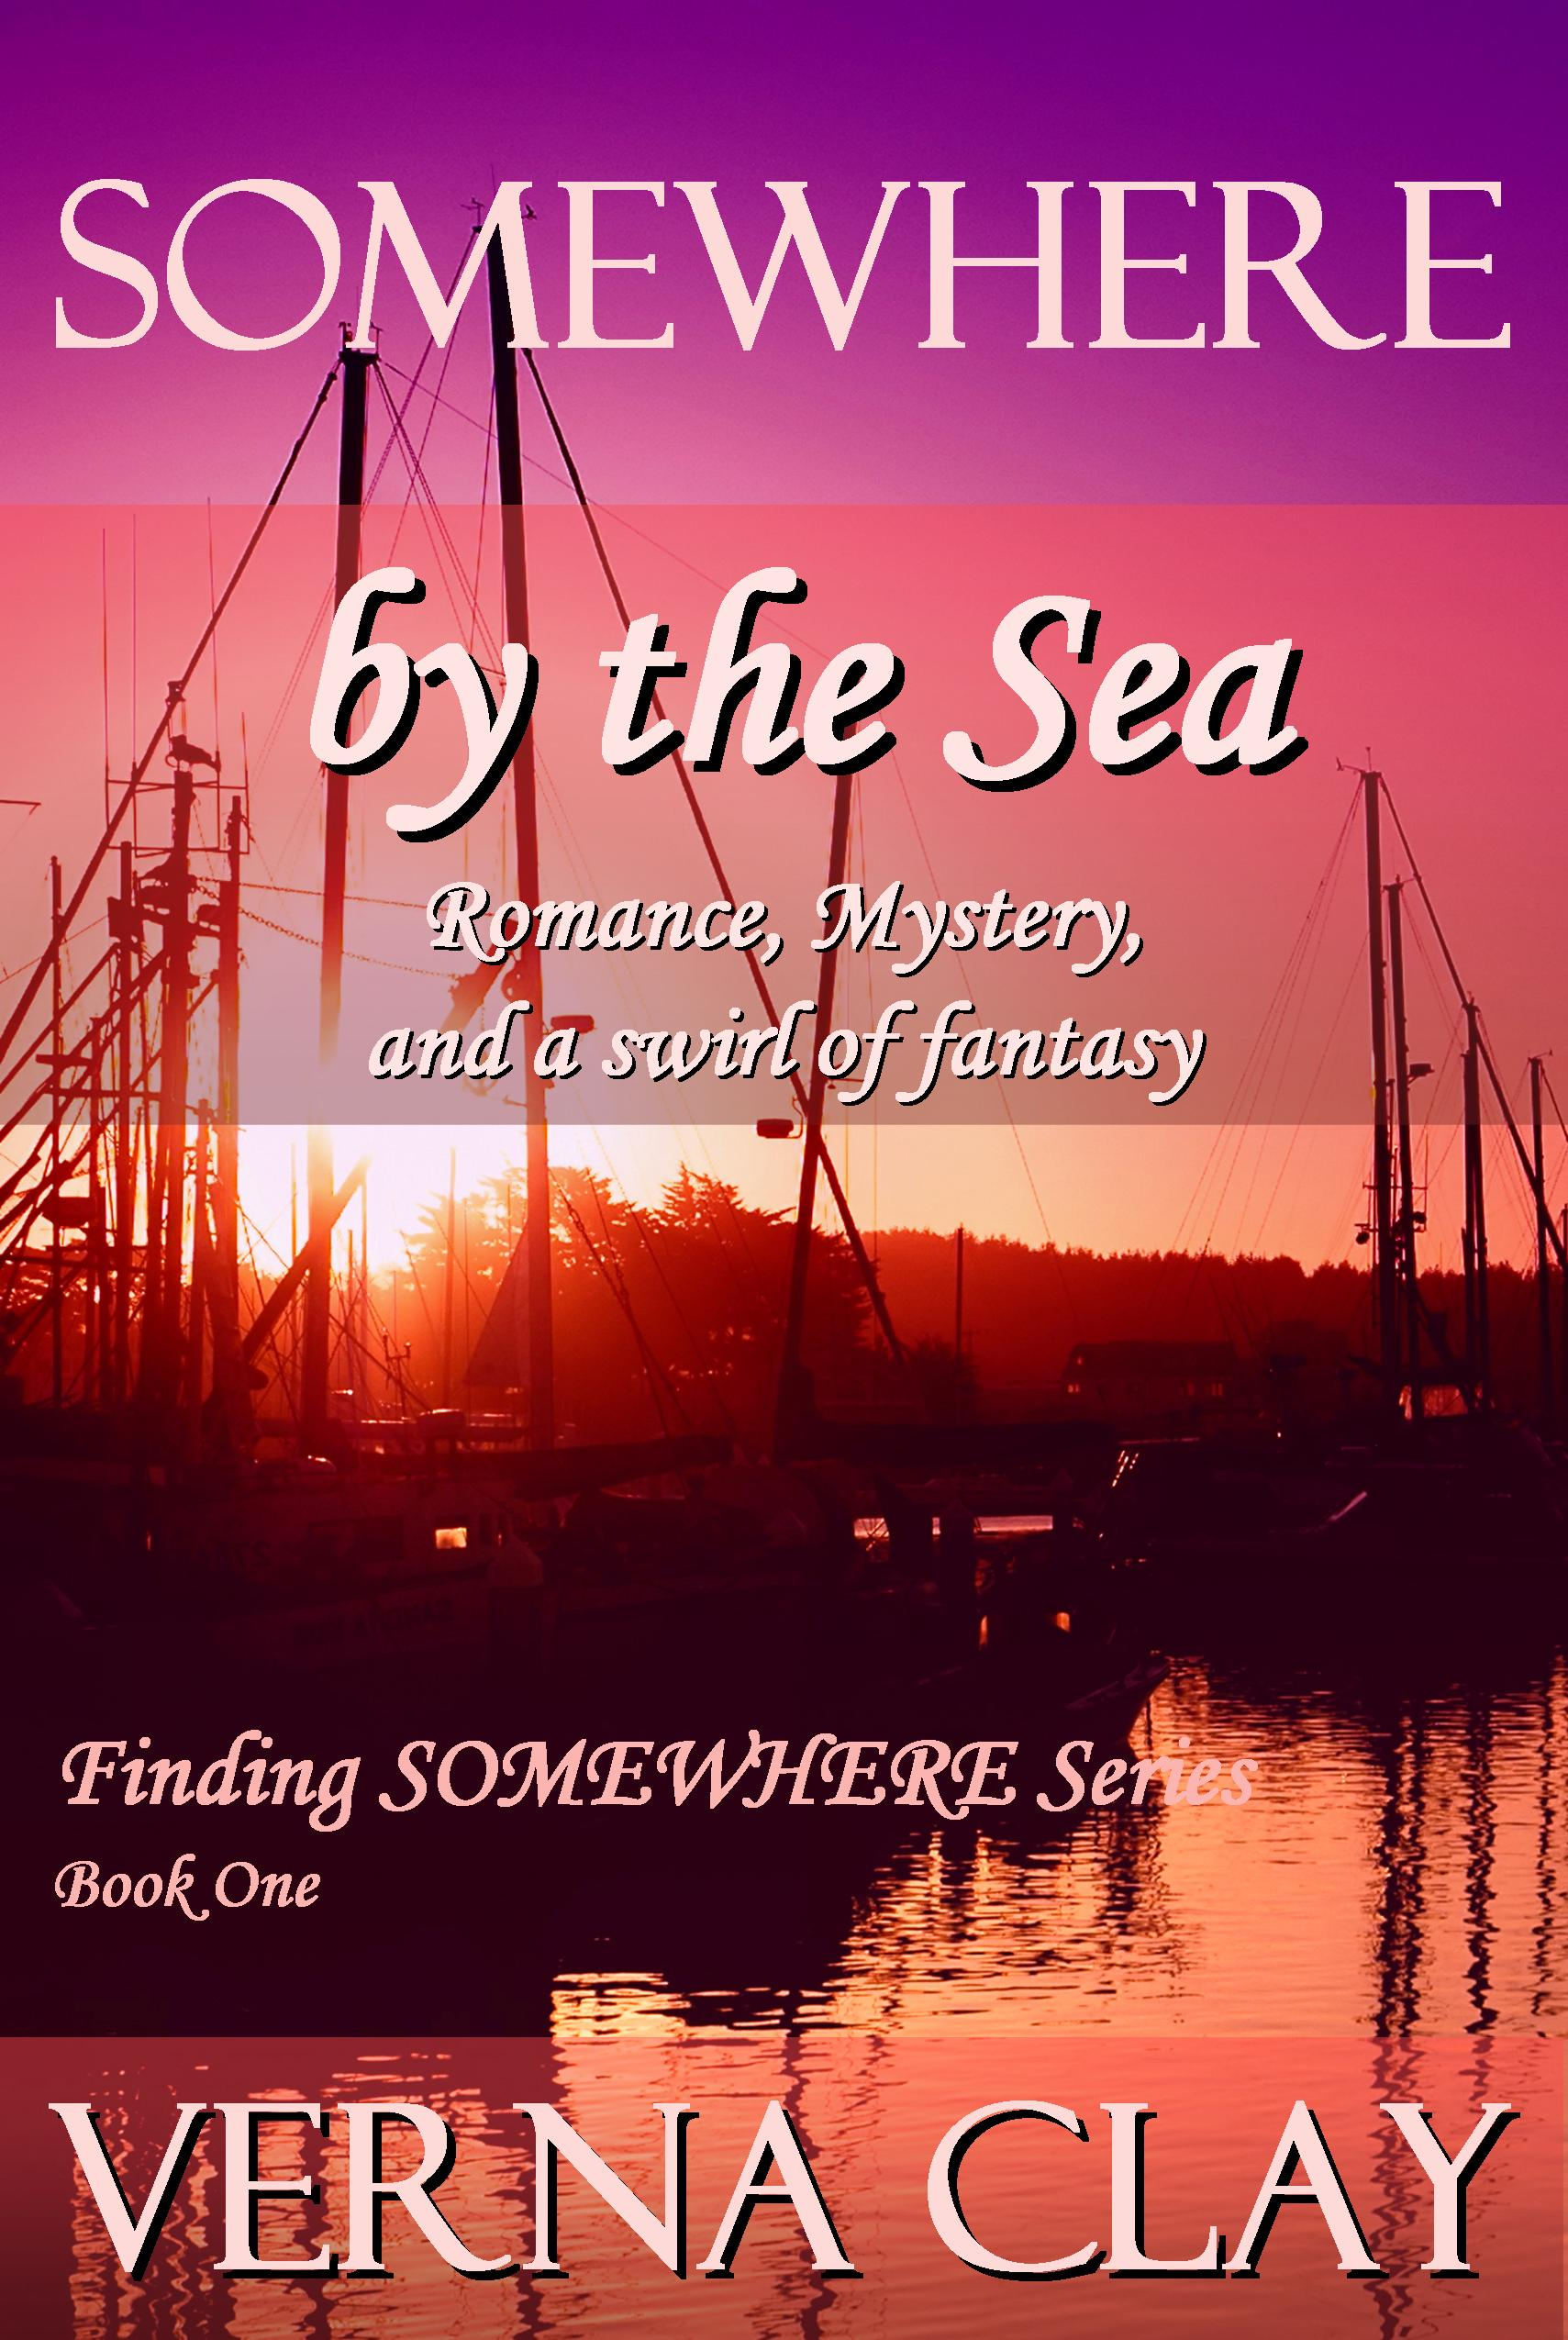 SOMEWHERE by the Sea (Finding SOMEWHERE Series Book 1) (sst-lxxii)